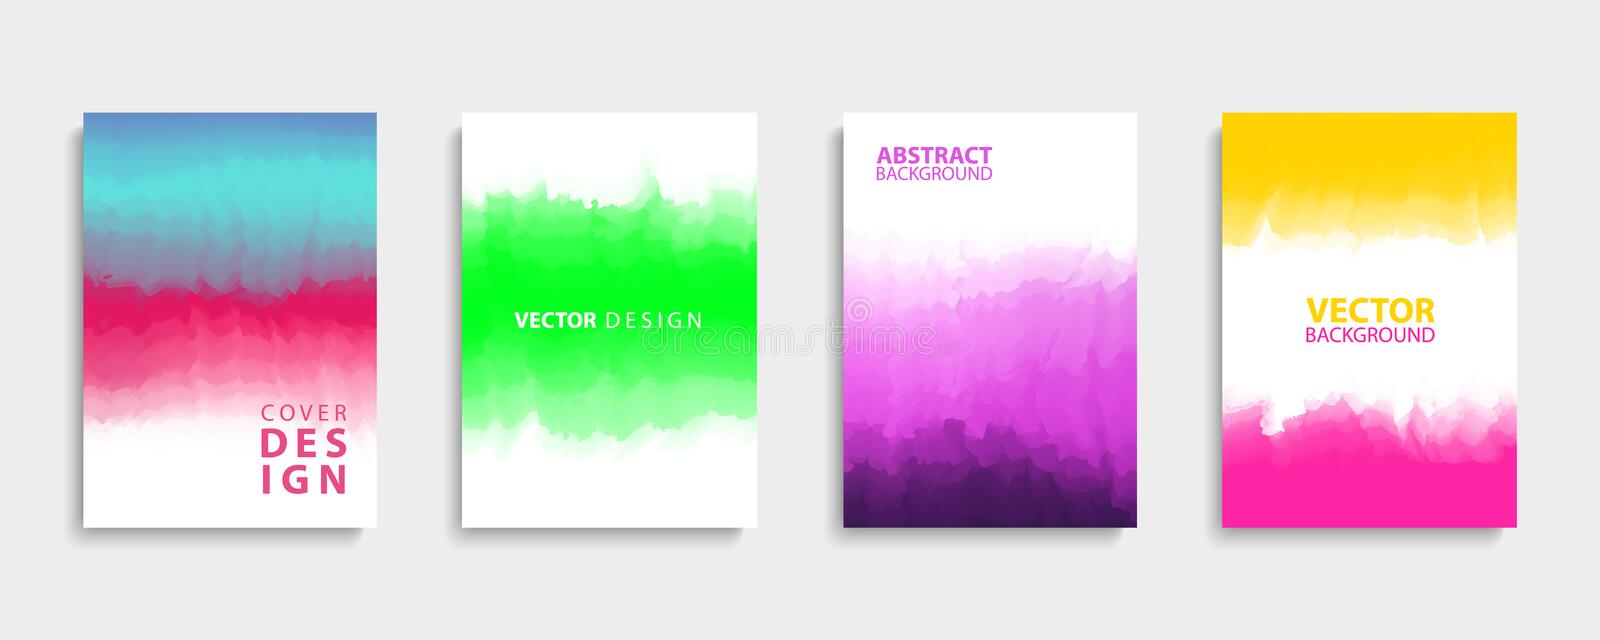 Covers design set with modern abstract color gradient patterns. Templates collection for brochures, posters, banners and cards. Vector illustration vector illustration